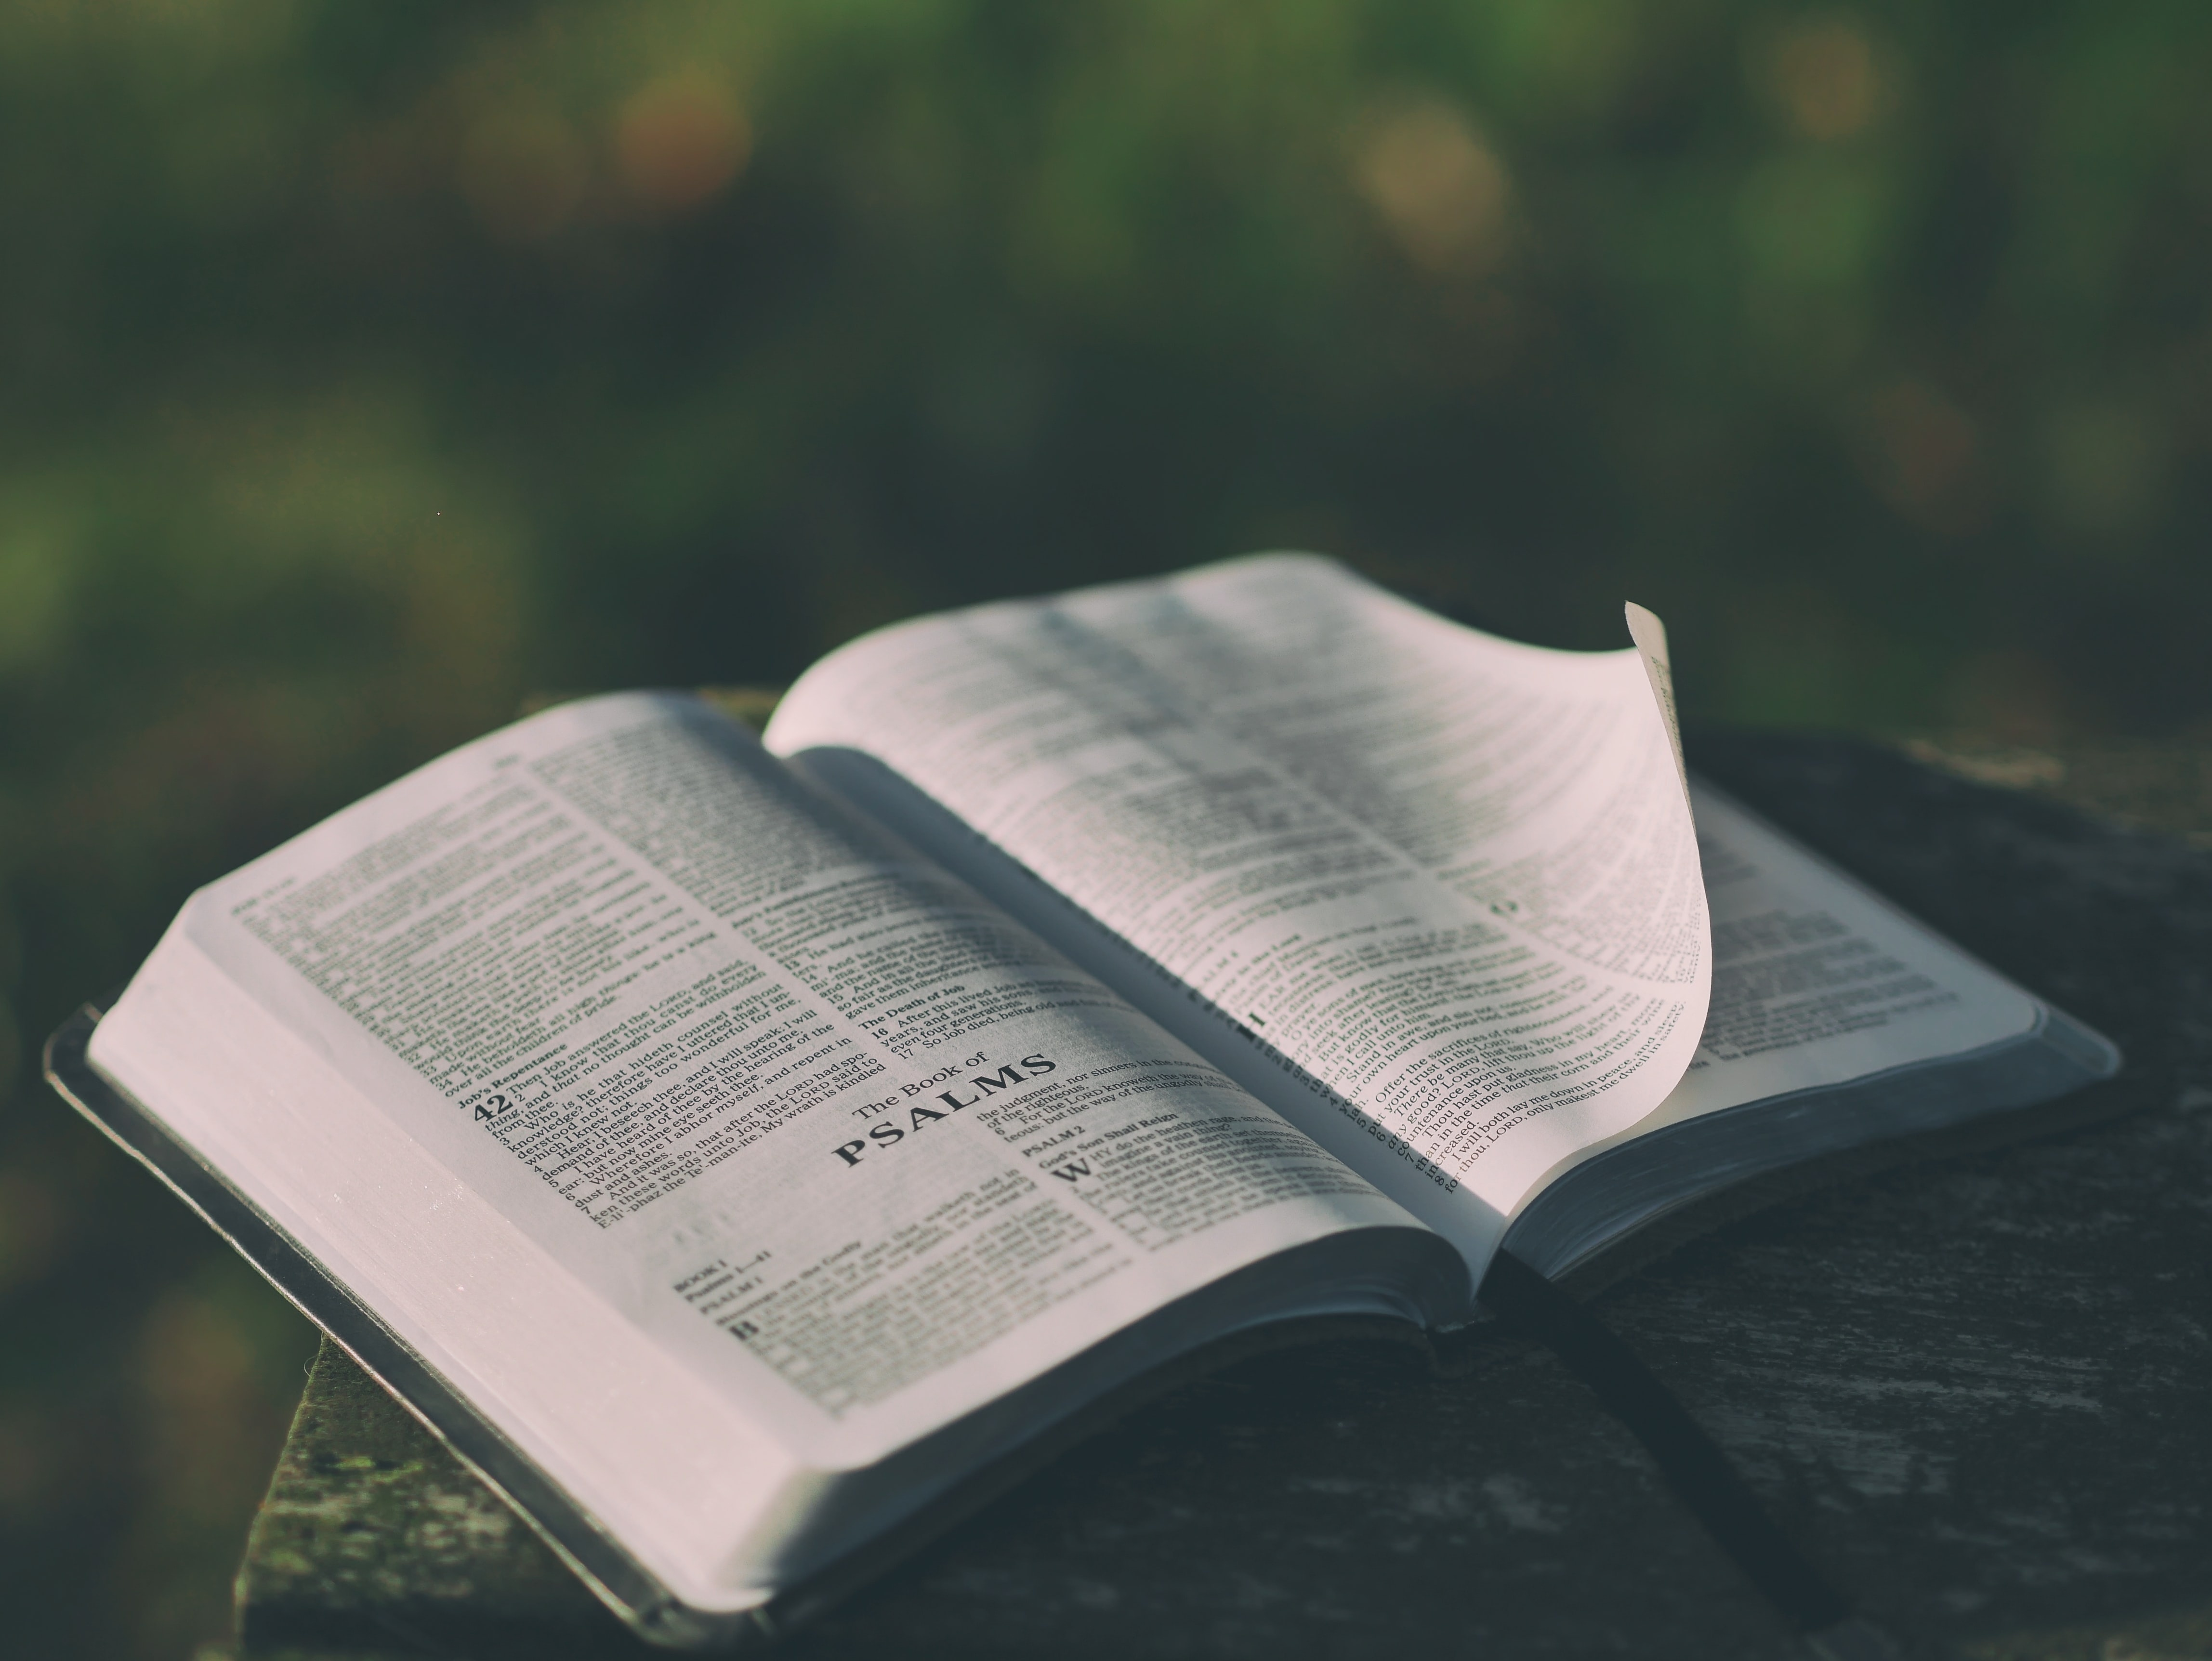 Bible open to the book of Psalms